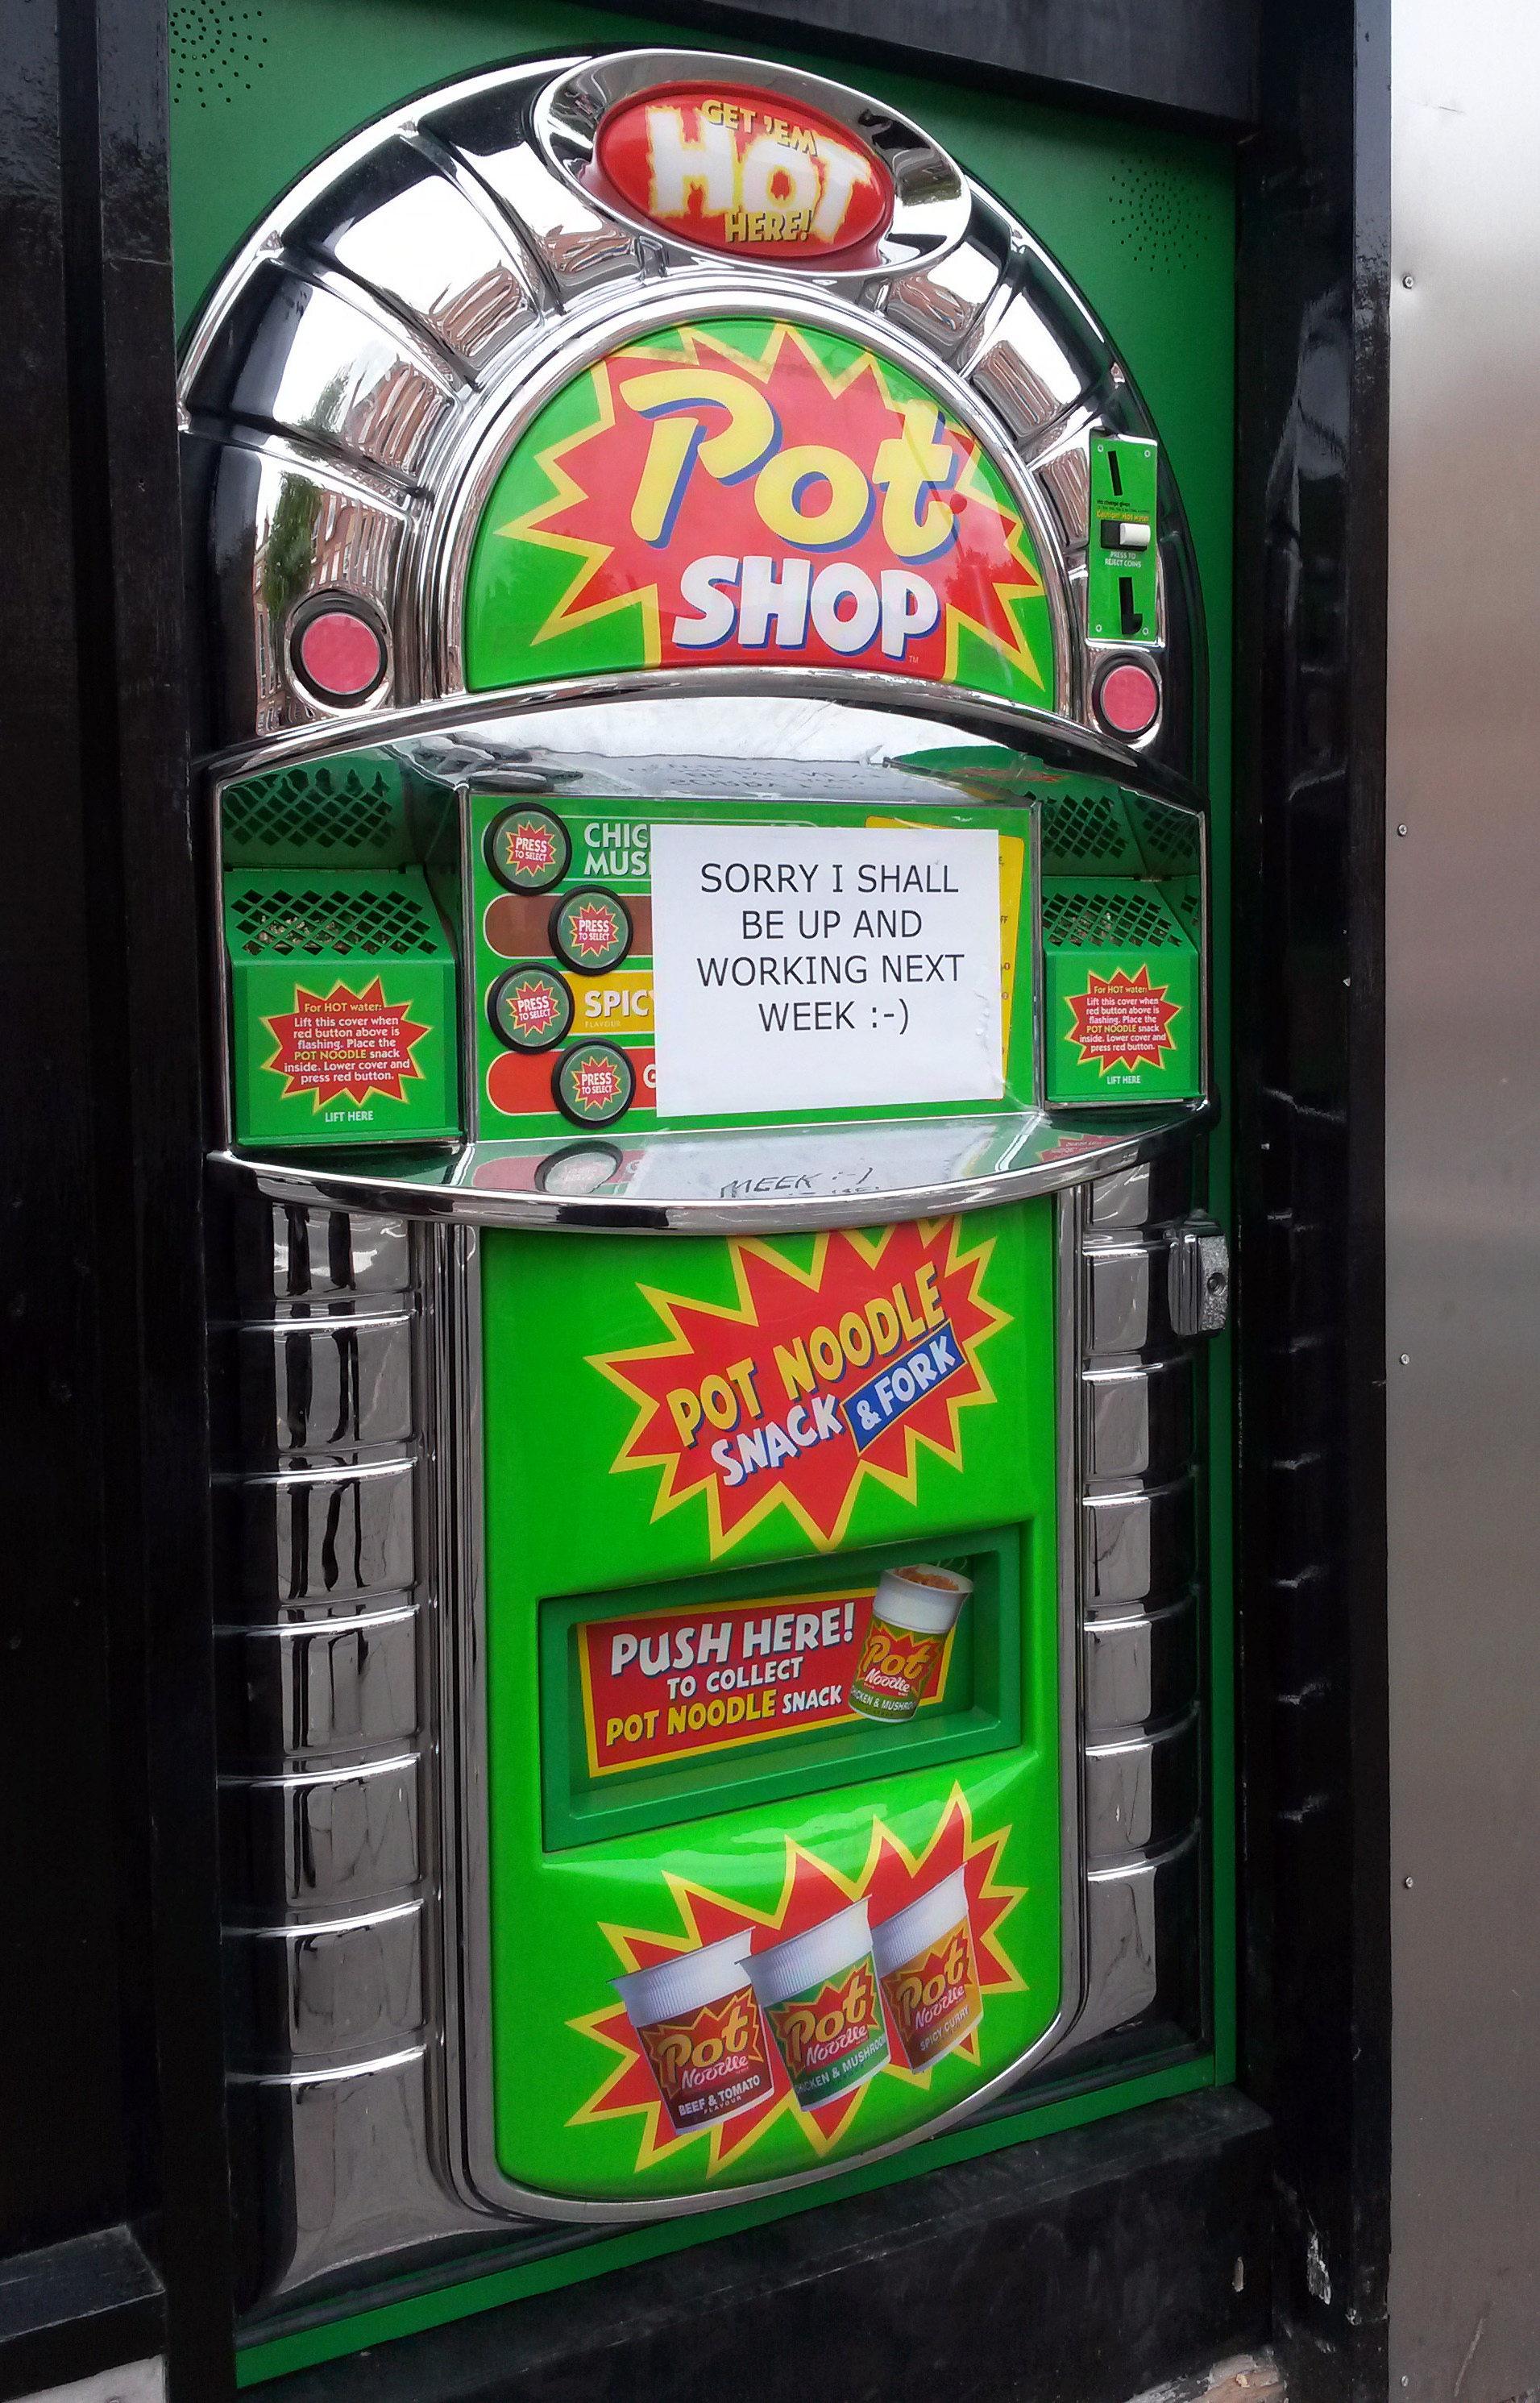 Pot Noodle vending machine. A Pot Noodle vending machine, which has been installed on Mansfield Road in Nottingham on Aug. 3, 2015.